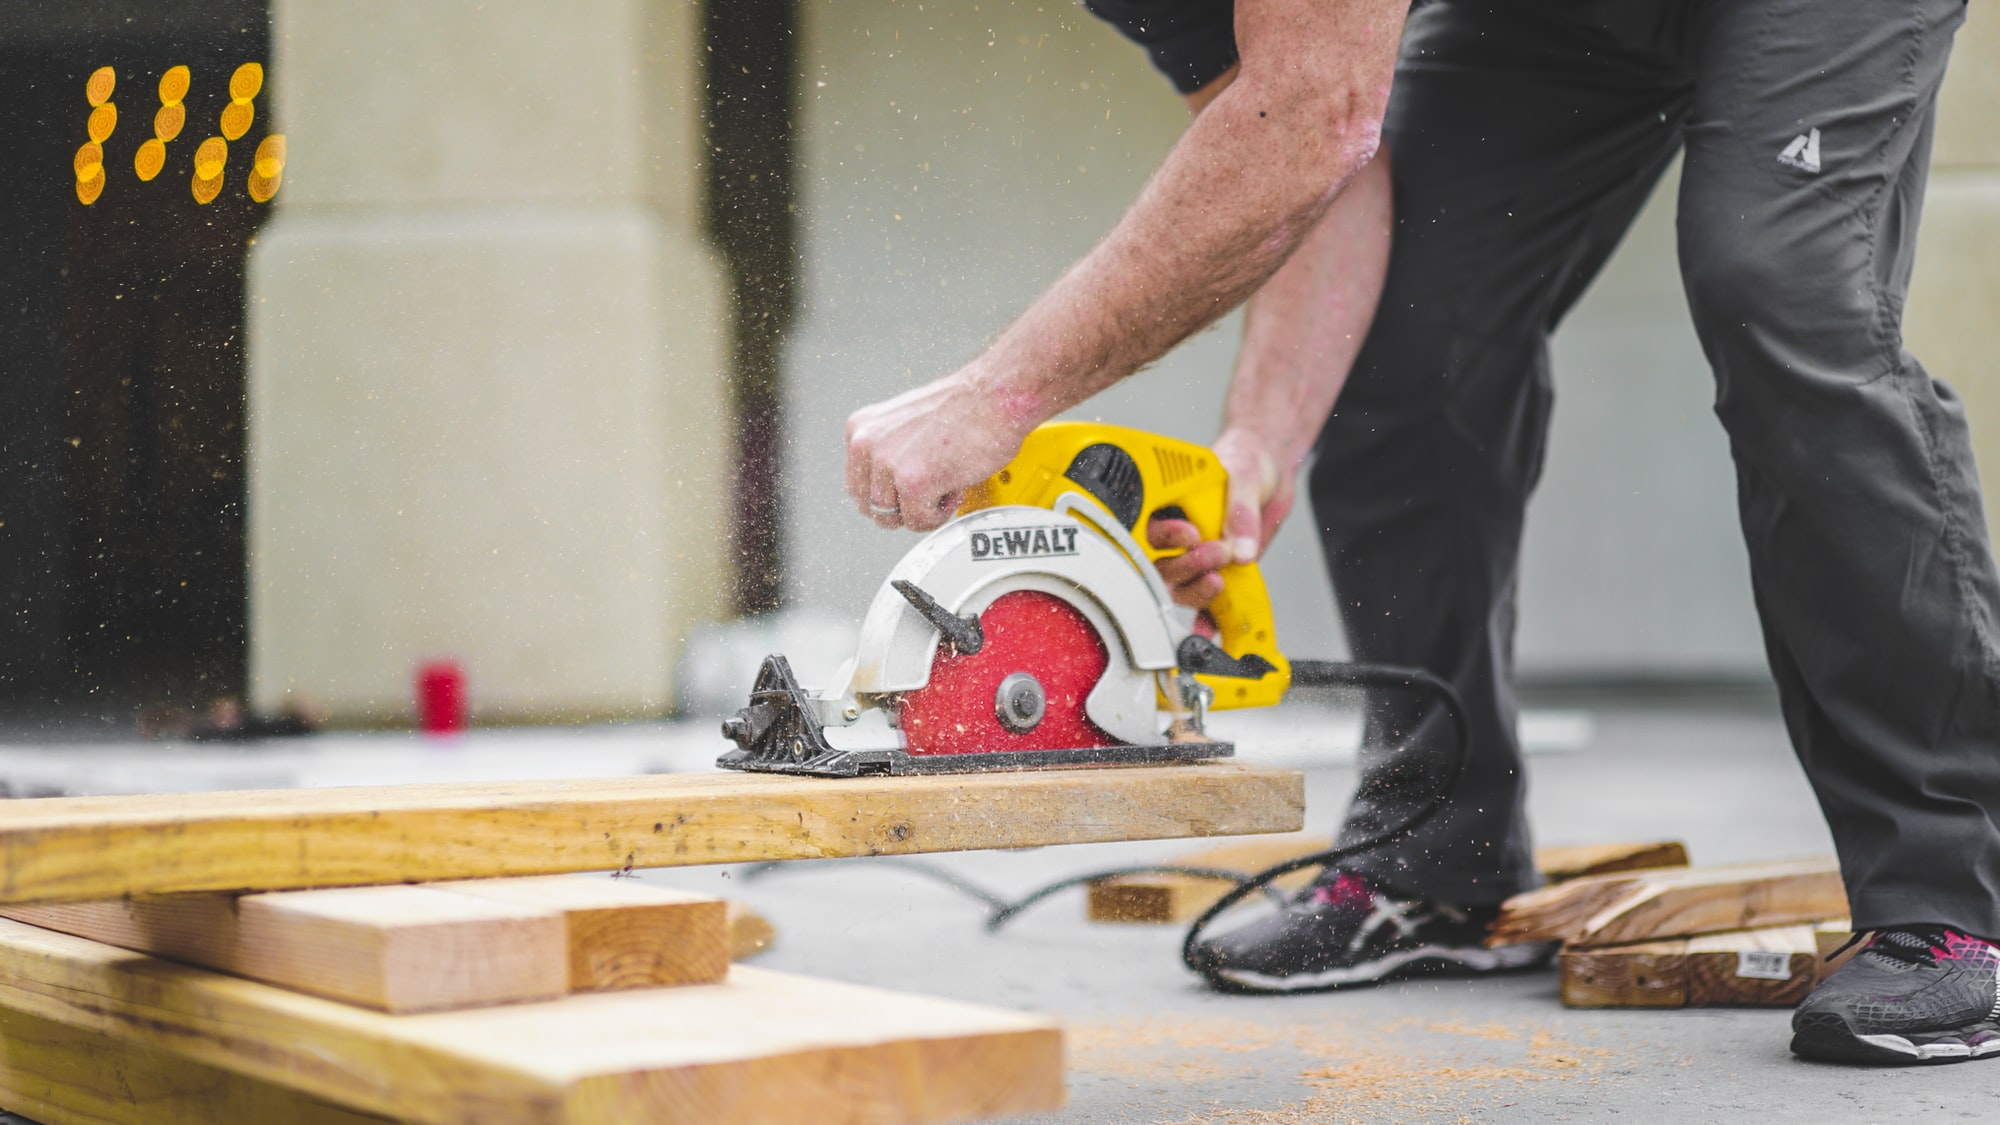 What You Need to Know About Hiring a Construction Contractor